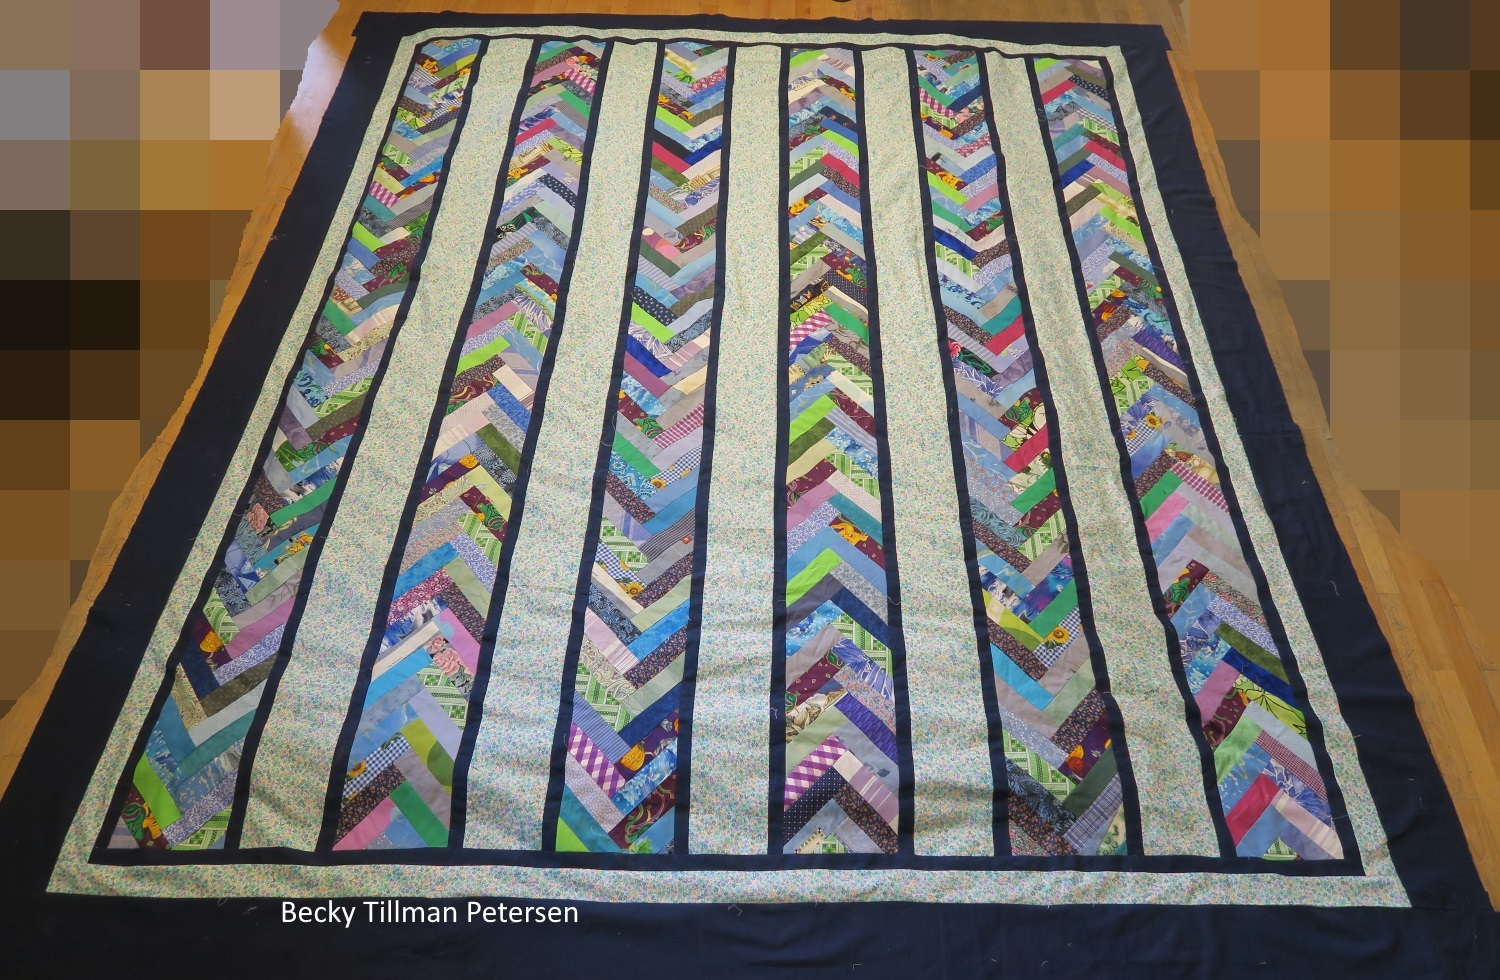 """Quilt named """"braided scraps"""" sitting on a wooden floor. The scrappy pieces are interlinked forming arrows within columns pointing alternating pointing upwards or downwards inversly according to the column preceding it. Between the scrap columns are white with blue dots columns. The exterior border is dark blue while the middle border is white with blue dots as the columns, and the interior border is dark navy blue, matching the exterior border."""